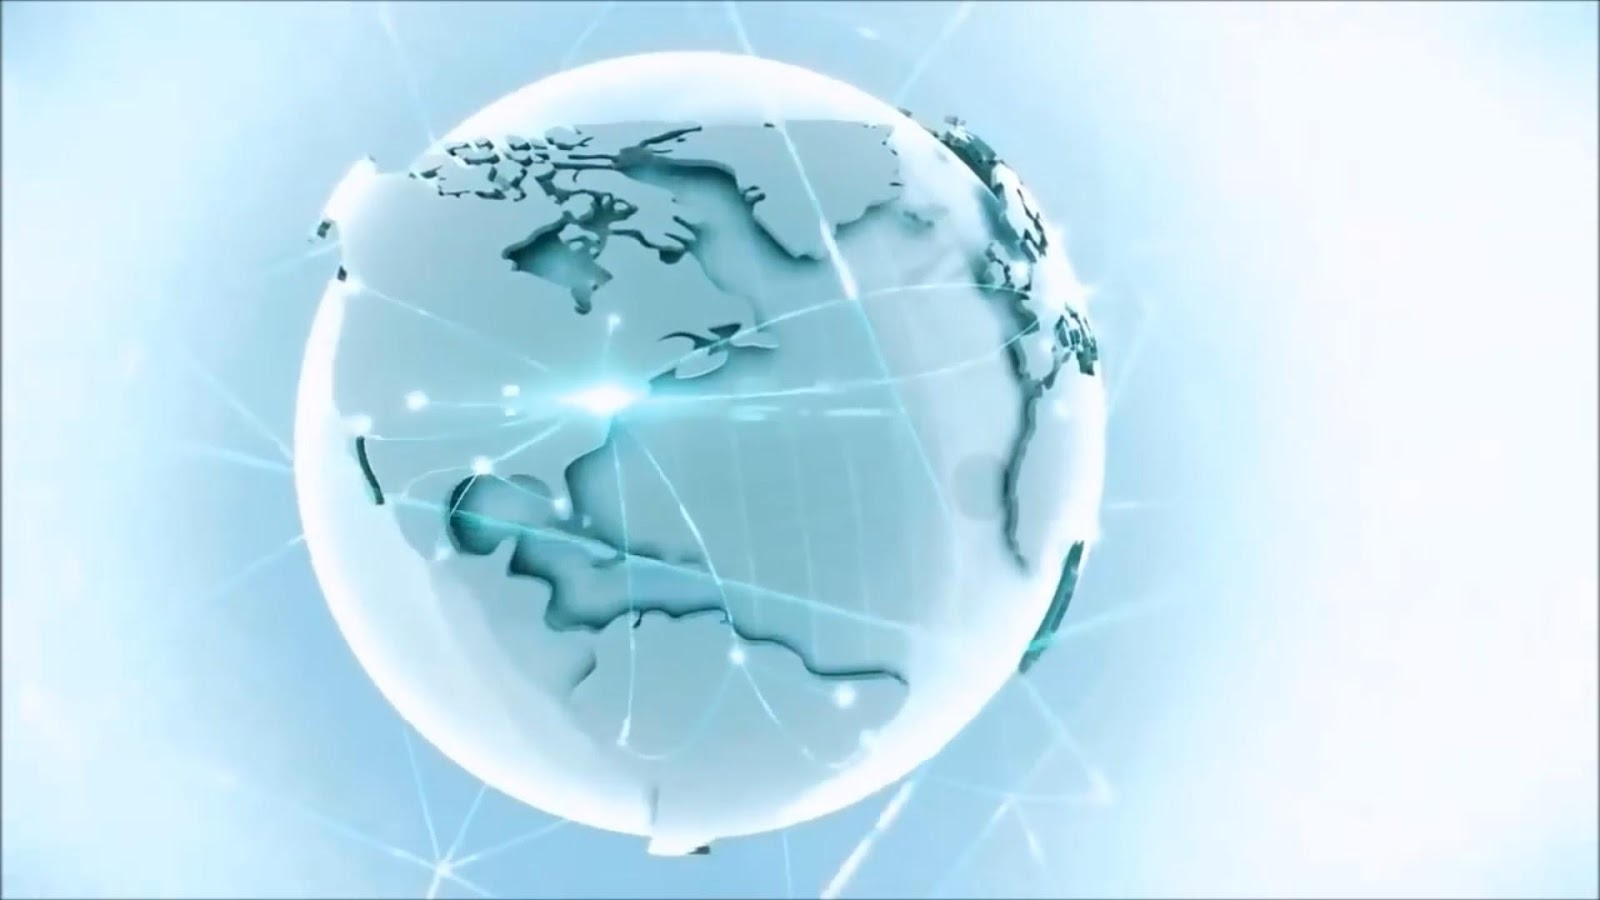 Sony vegas free intro template news globe model jakarta stock hi in today i will share a intro for opening news chanel this free royalty and if you like download in below and if link not work i will share 3 maxwellsz